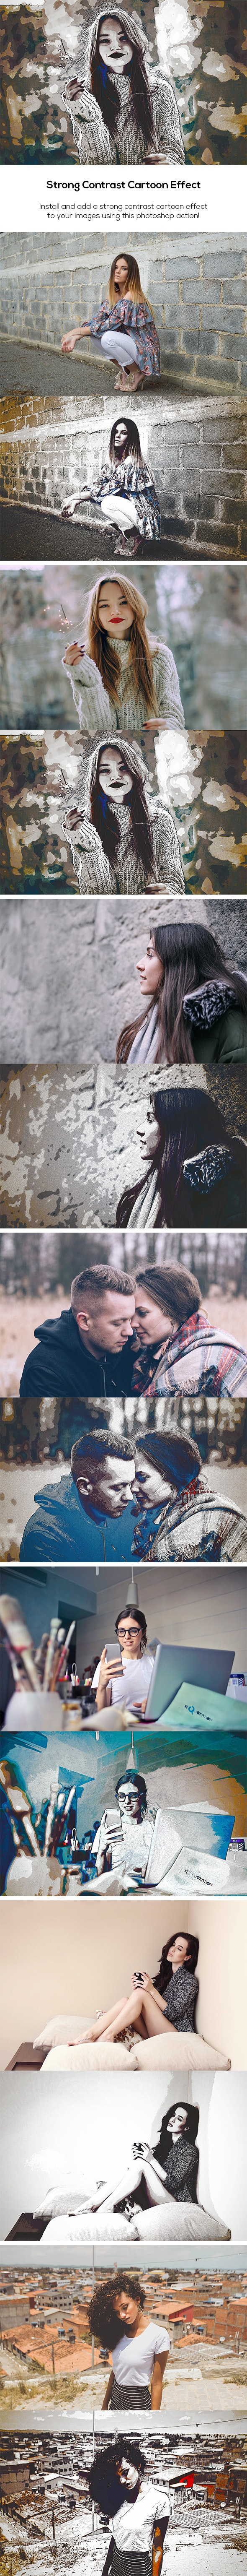 Strong Contrast Cartoon Effect - Photo Effects Actions